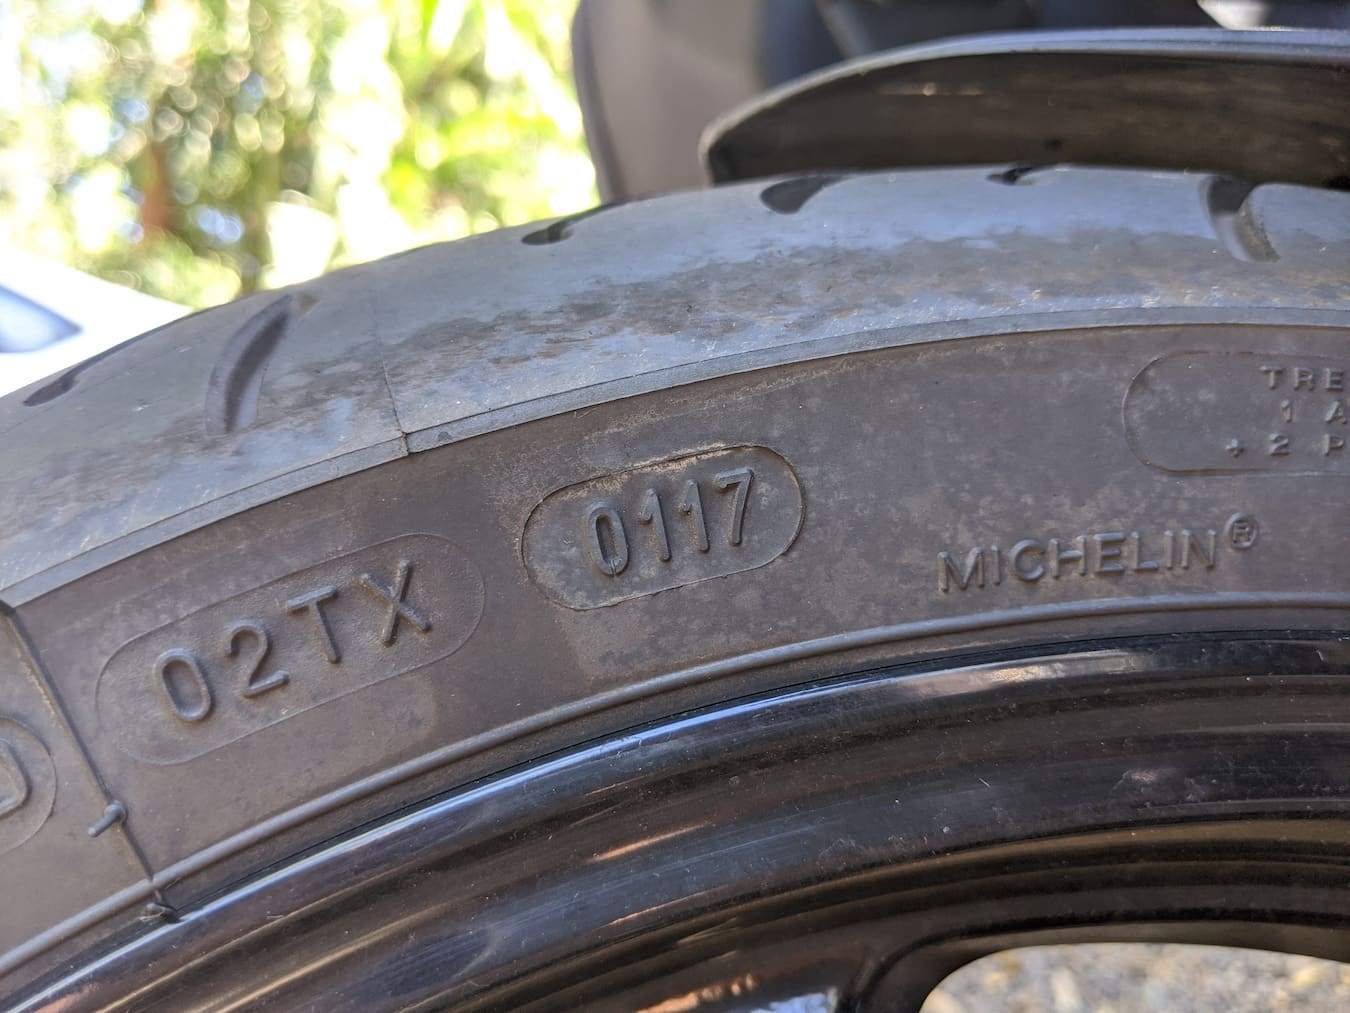 Date tyre codes on a used motorcycle